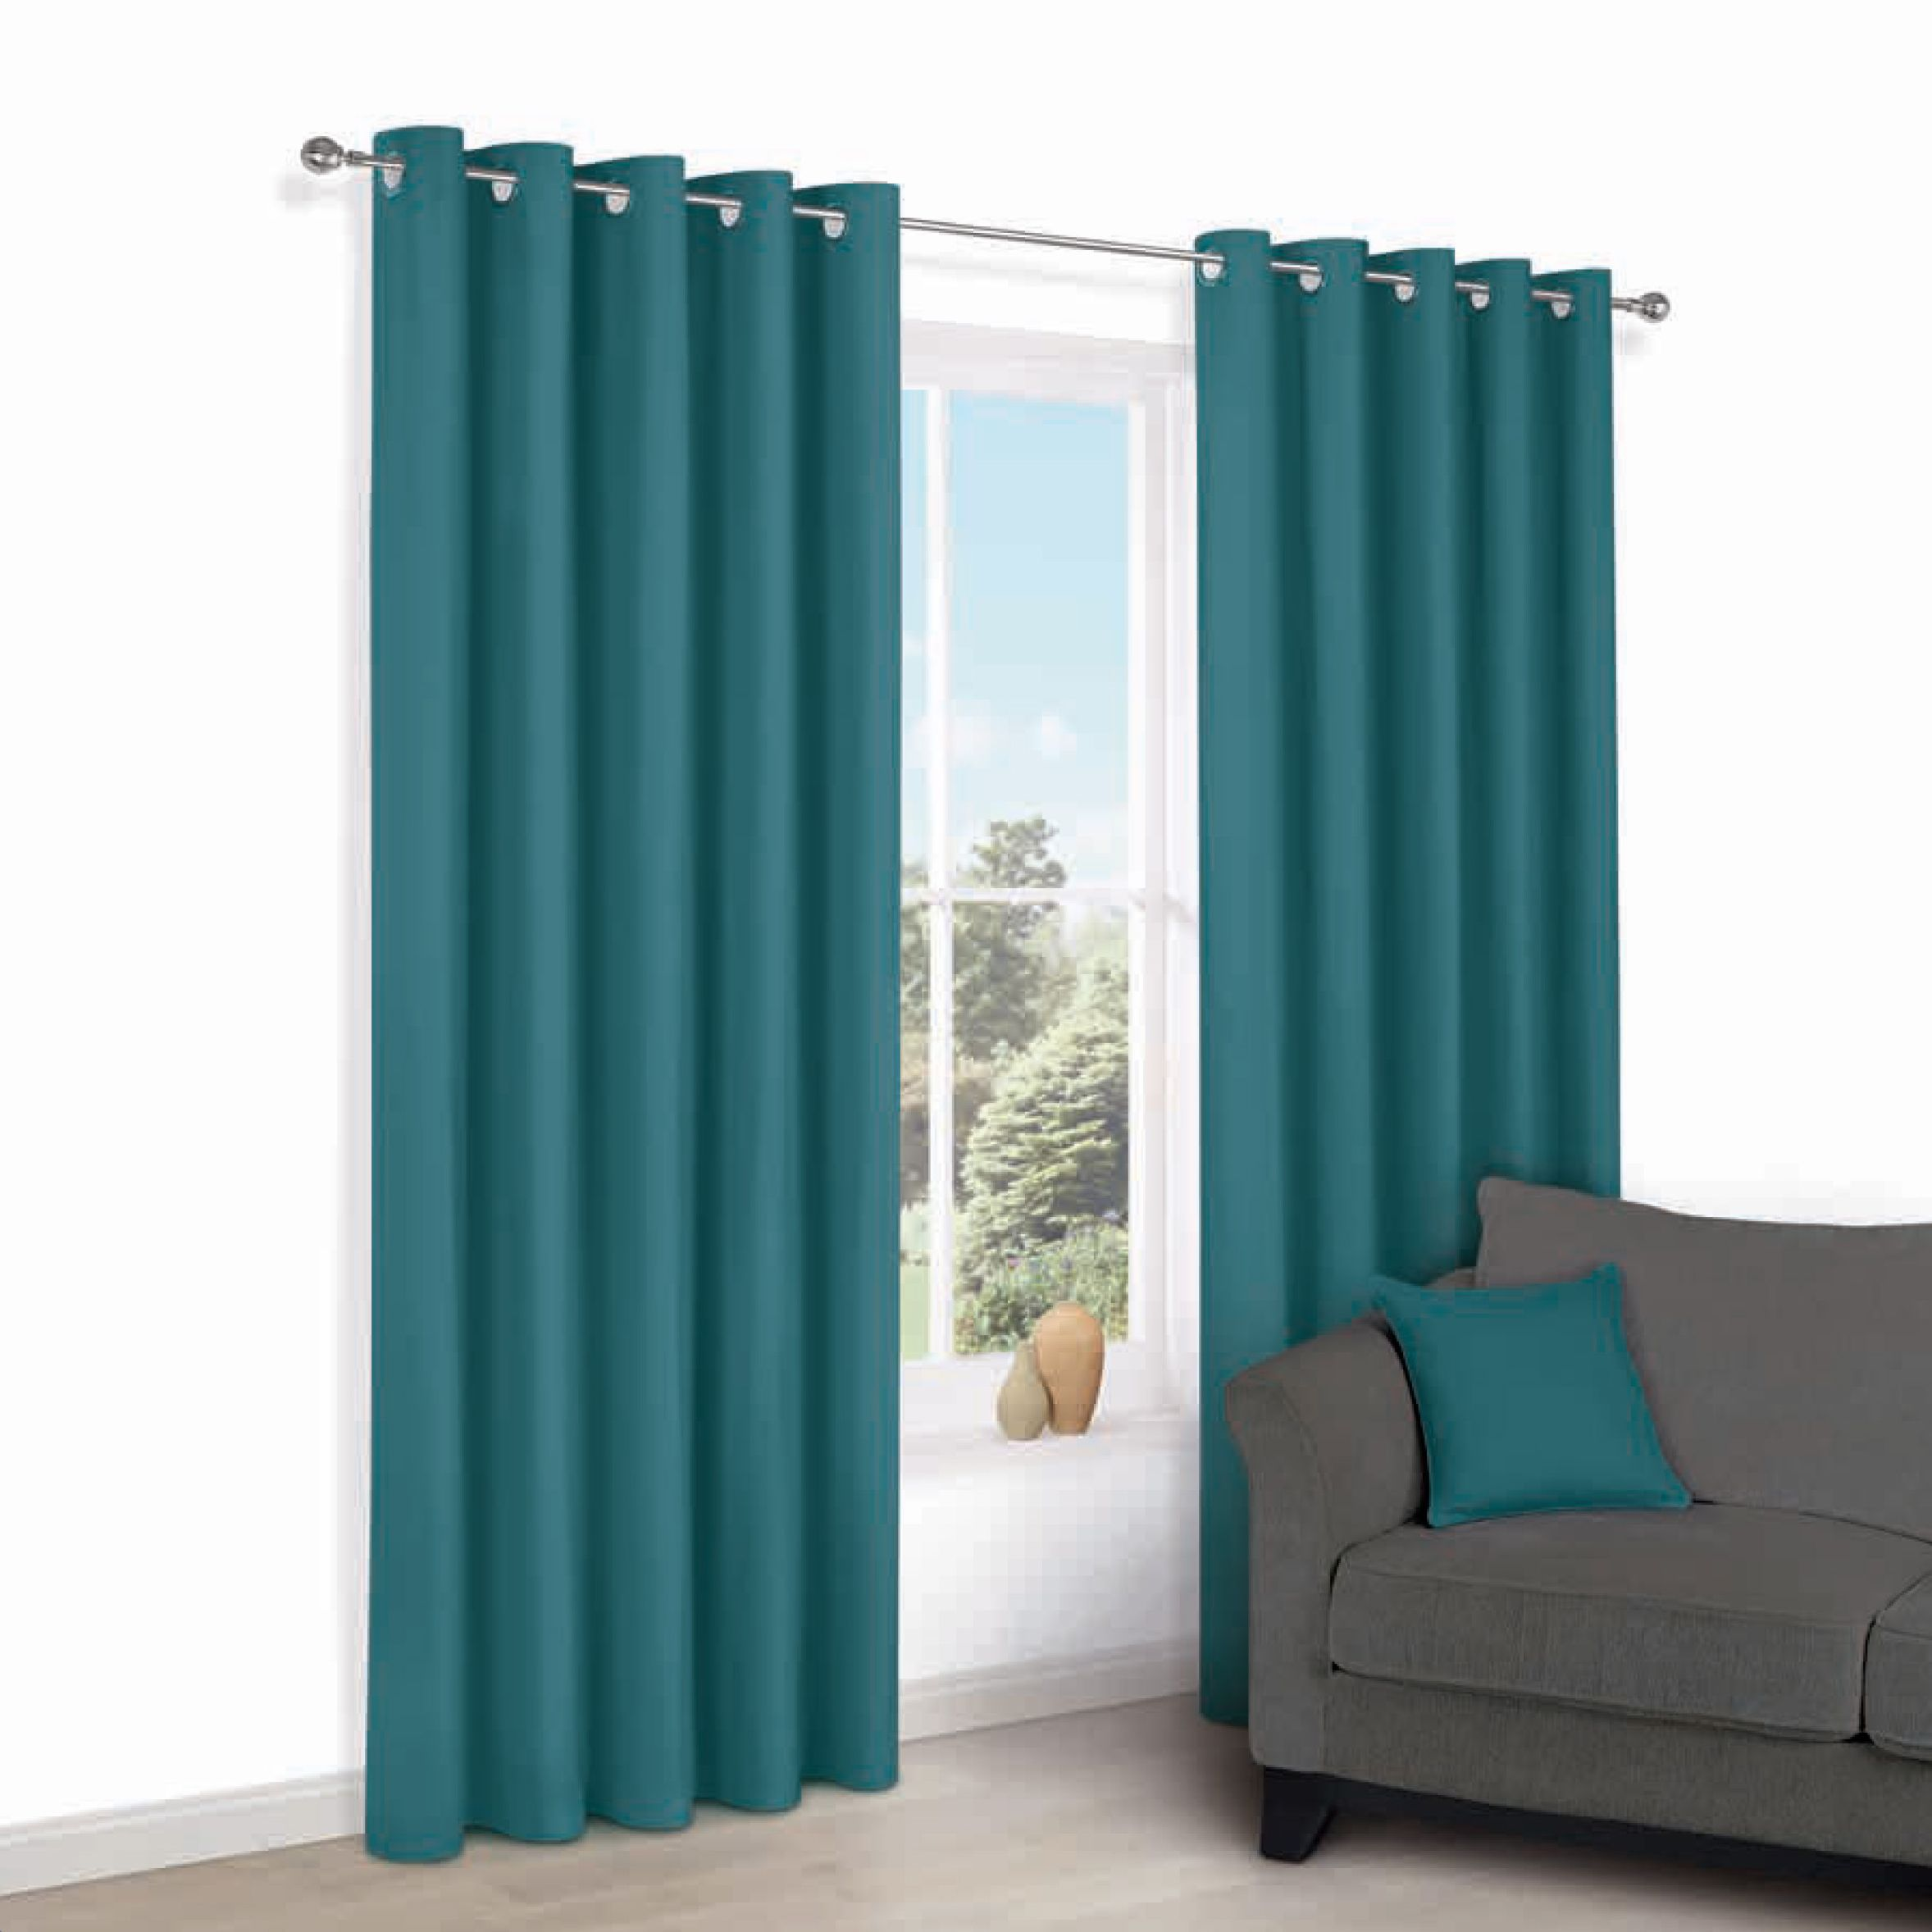 Zen Peacock Plain Eyelet Curtains (w)117cm (l)137cm